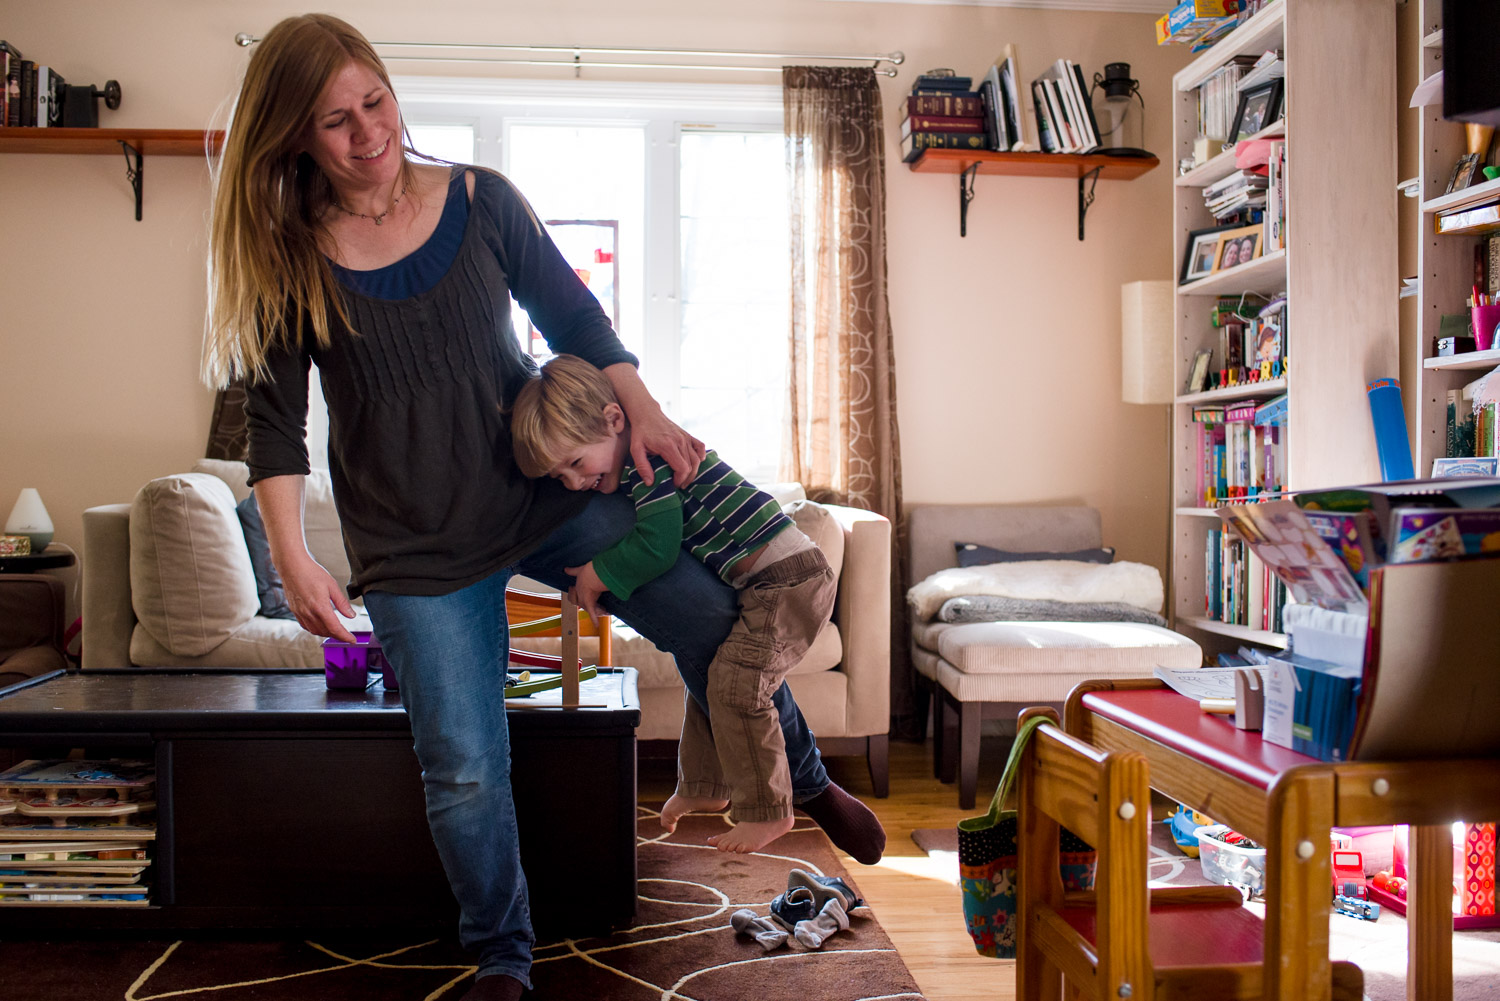 Toddler boy clings to mother's leg in living room.